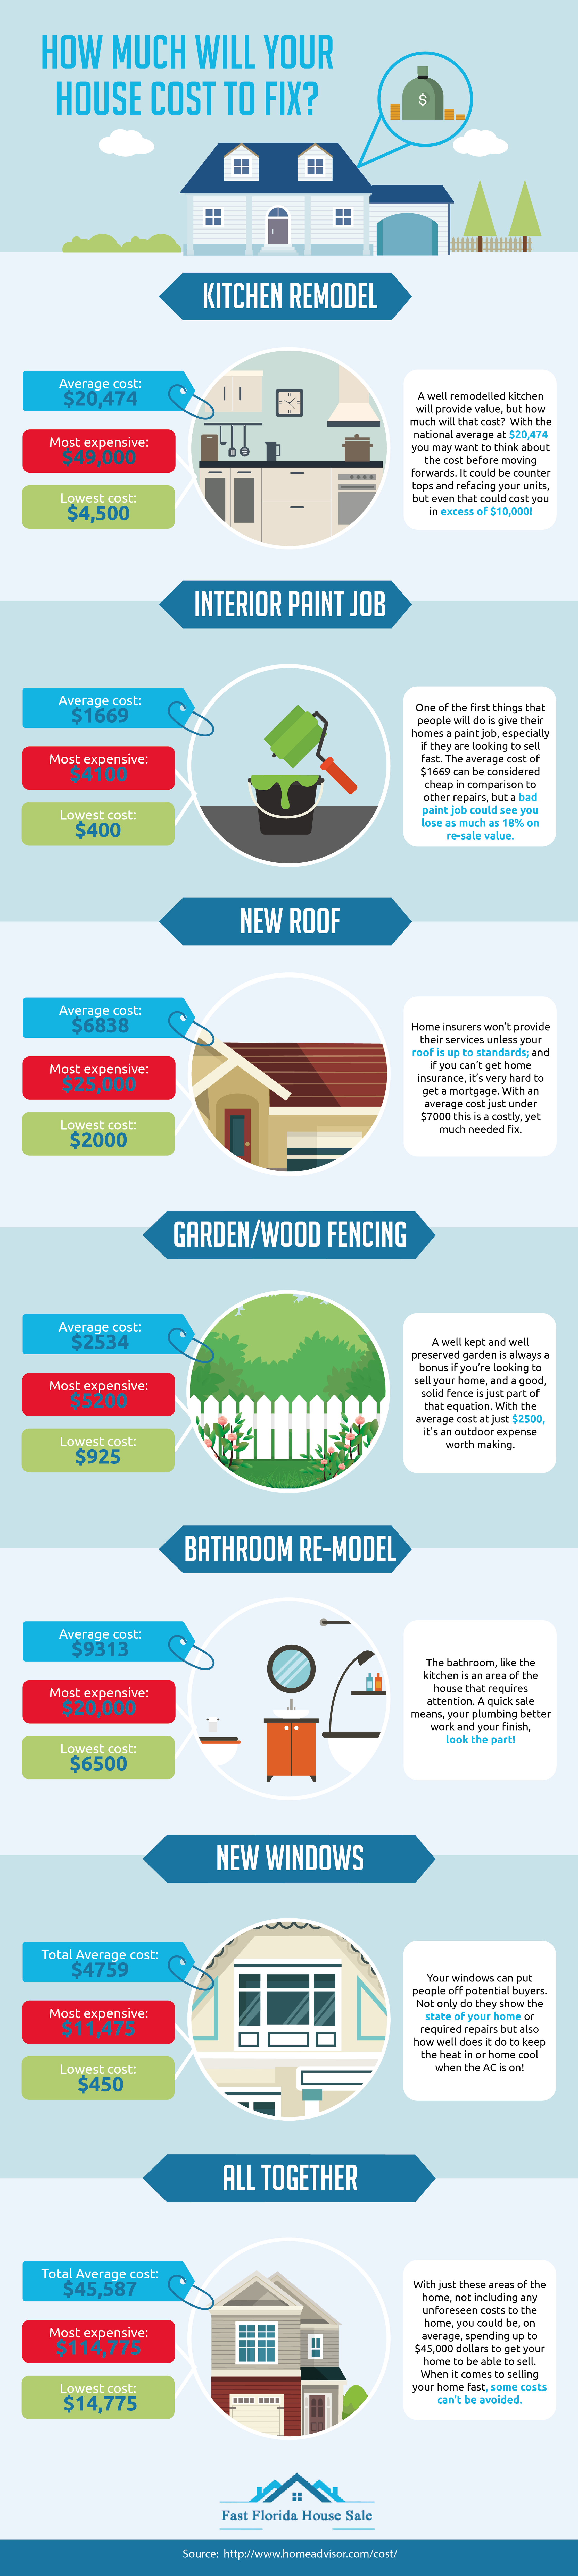 how-much-will-your-house-cost-to-fix